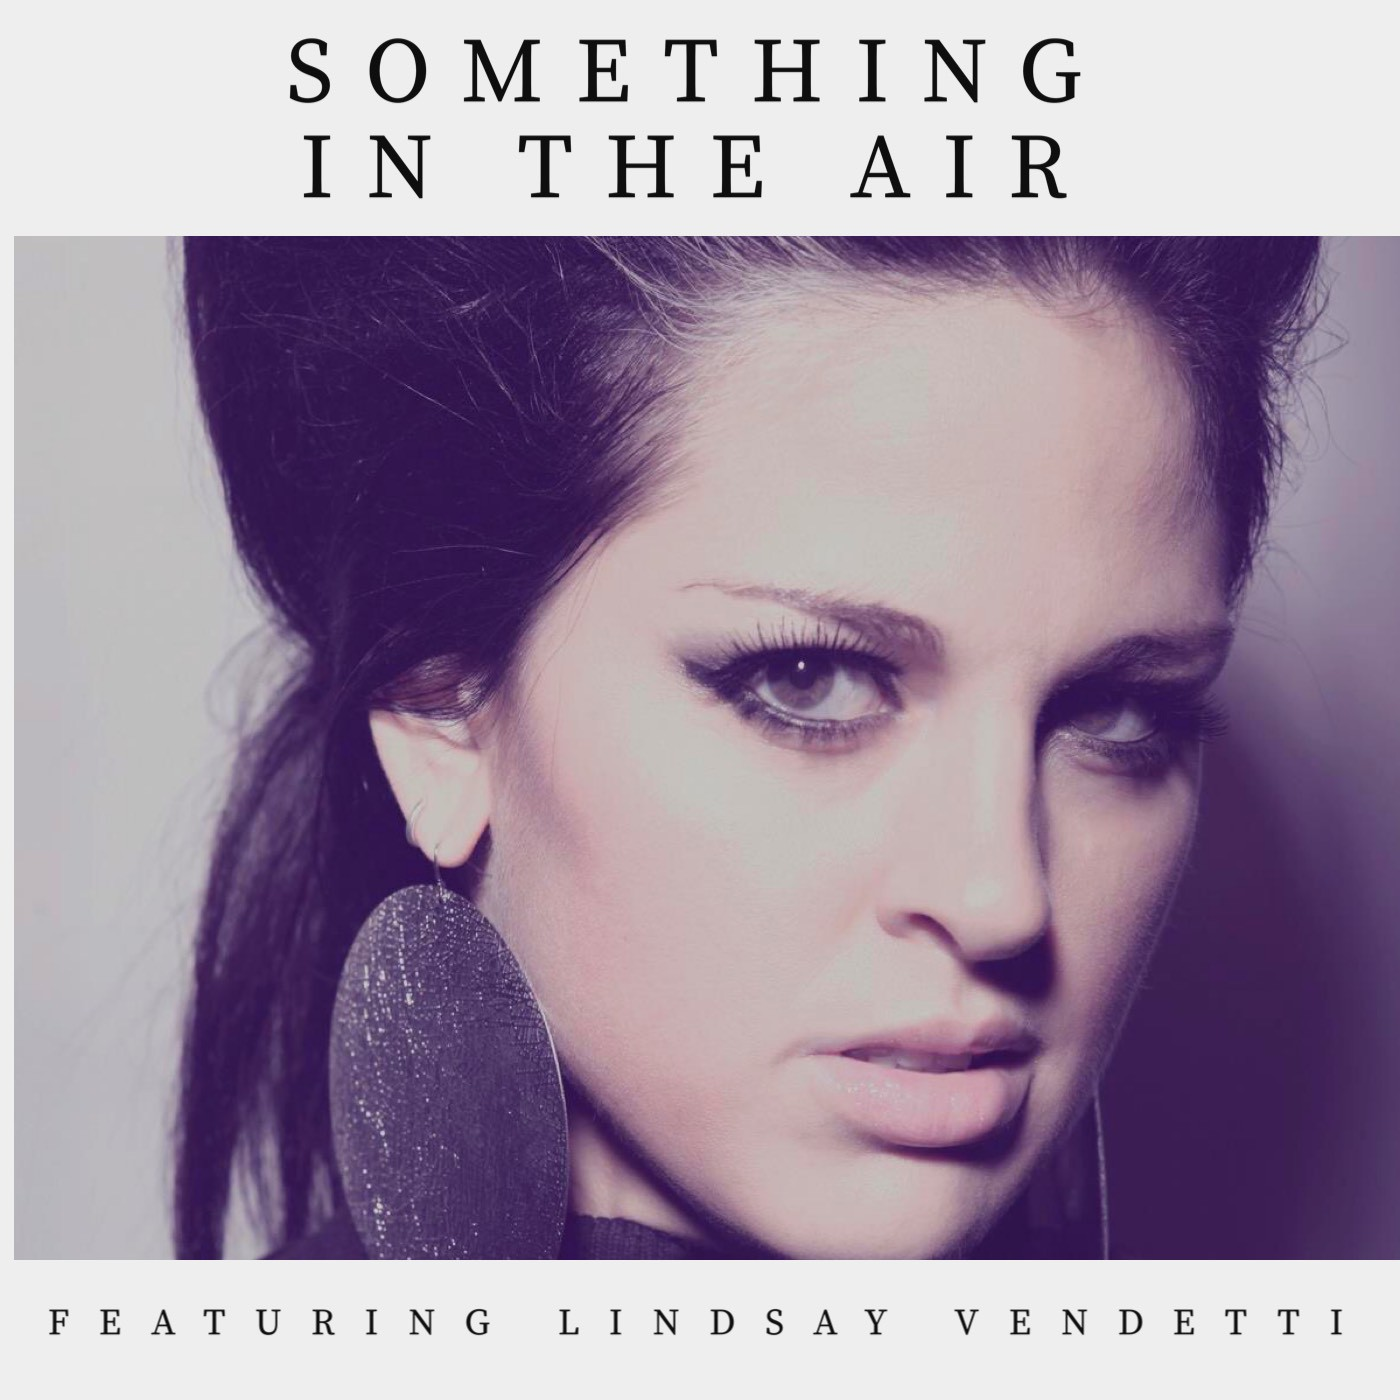 Something In The Air (feat. Lindsay Vendetti)